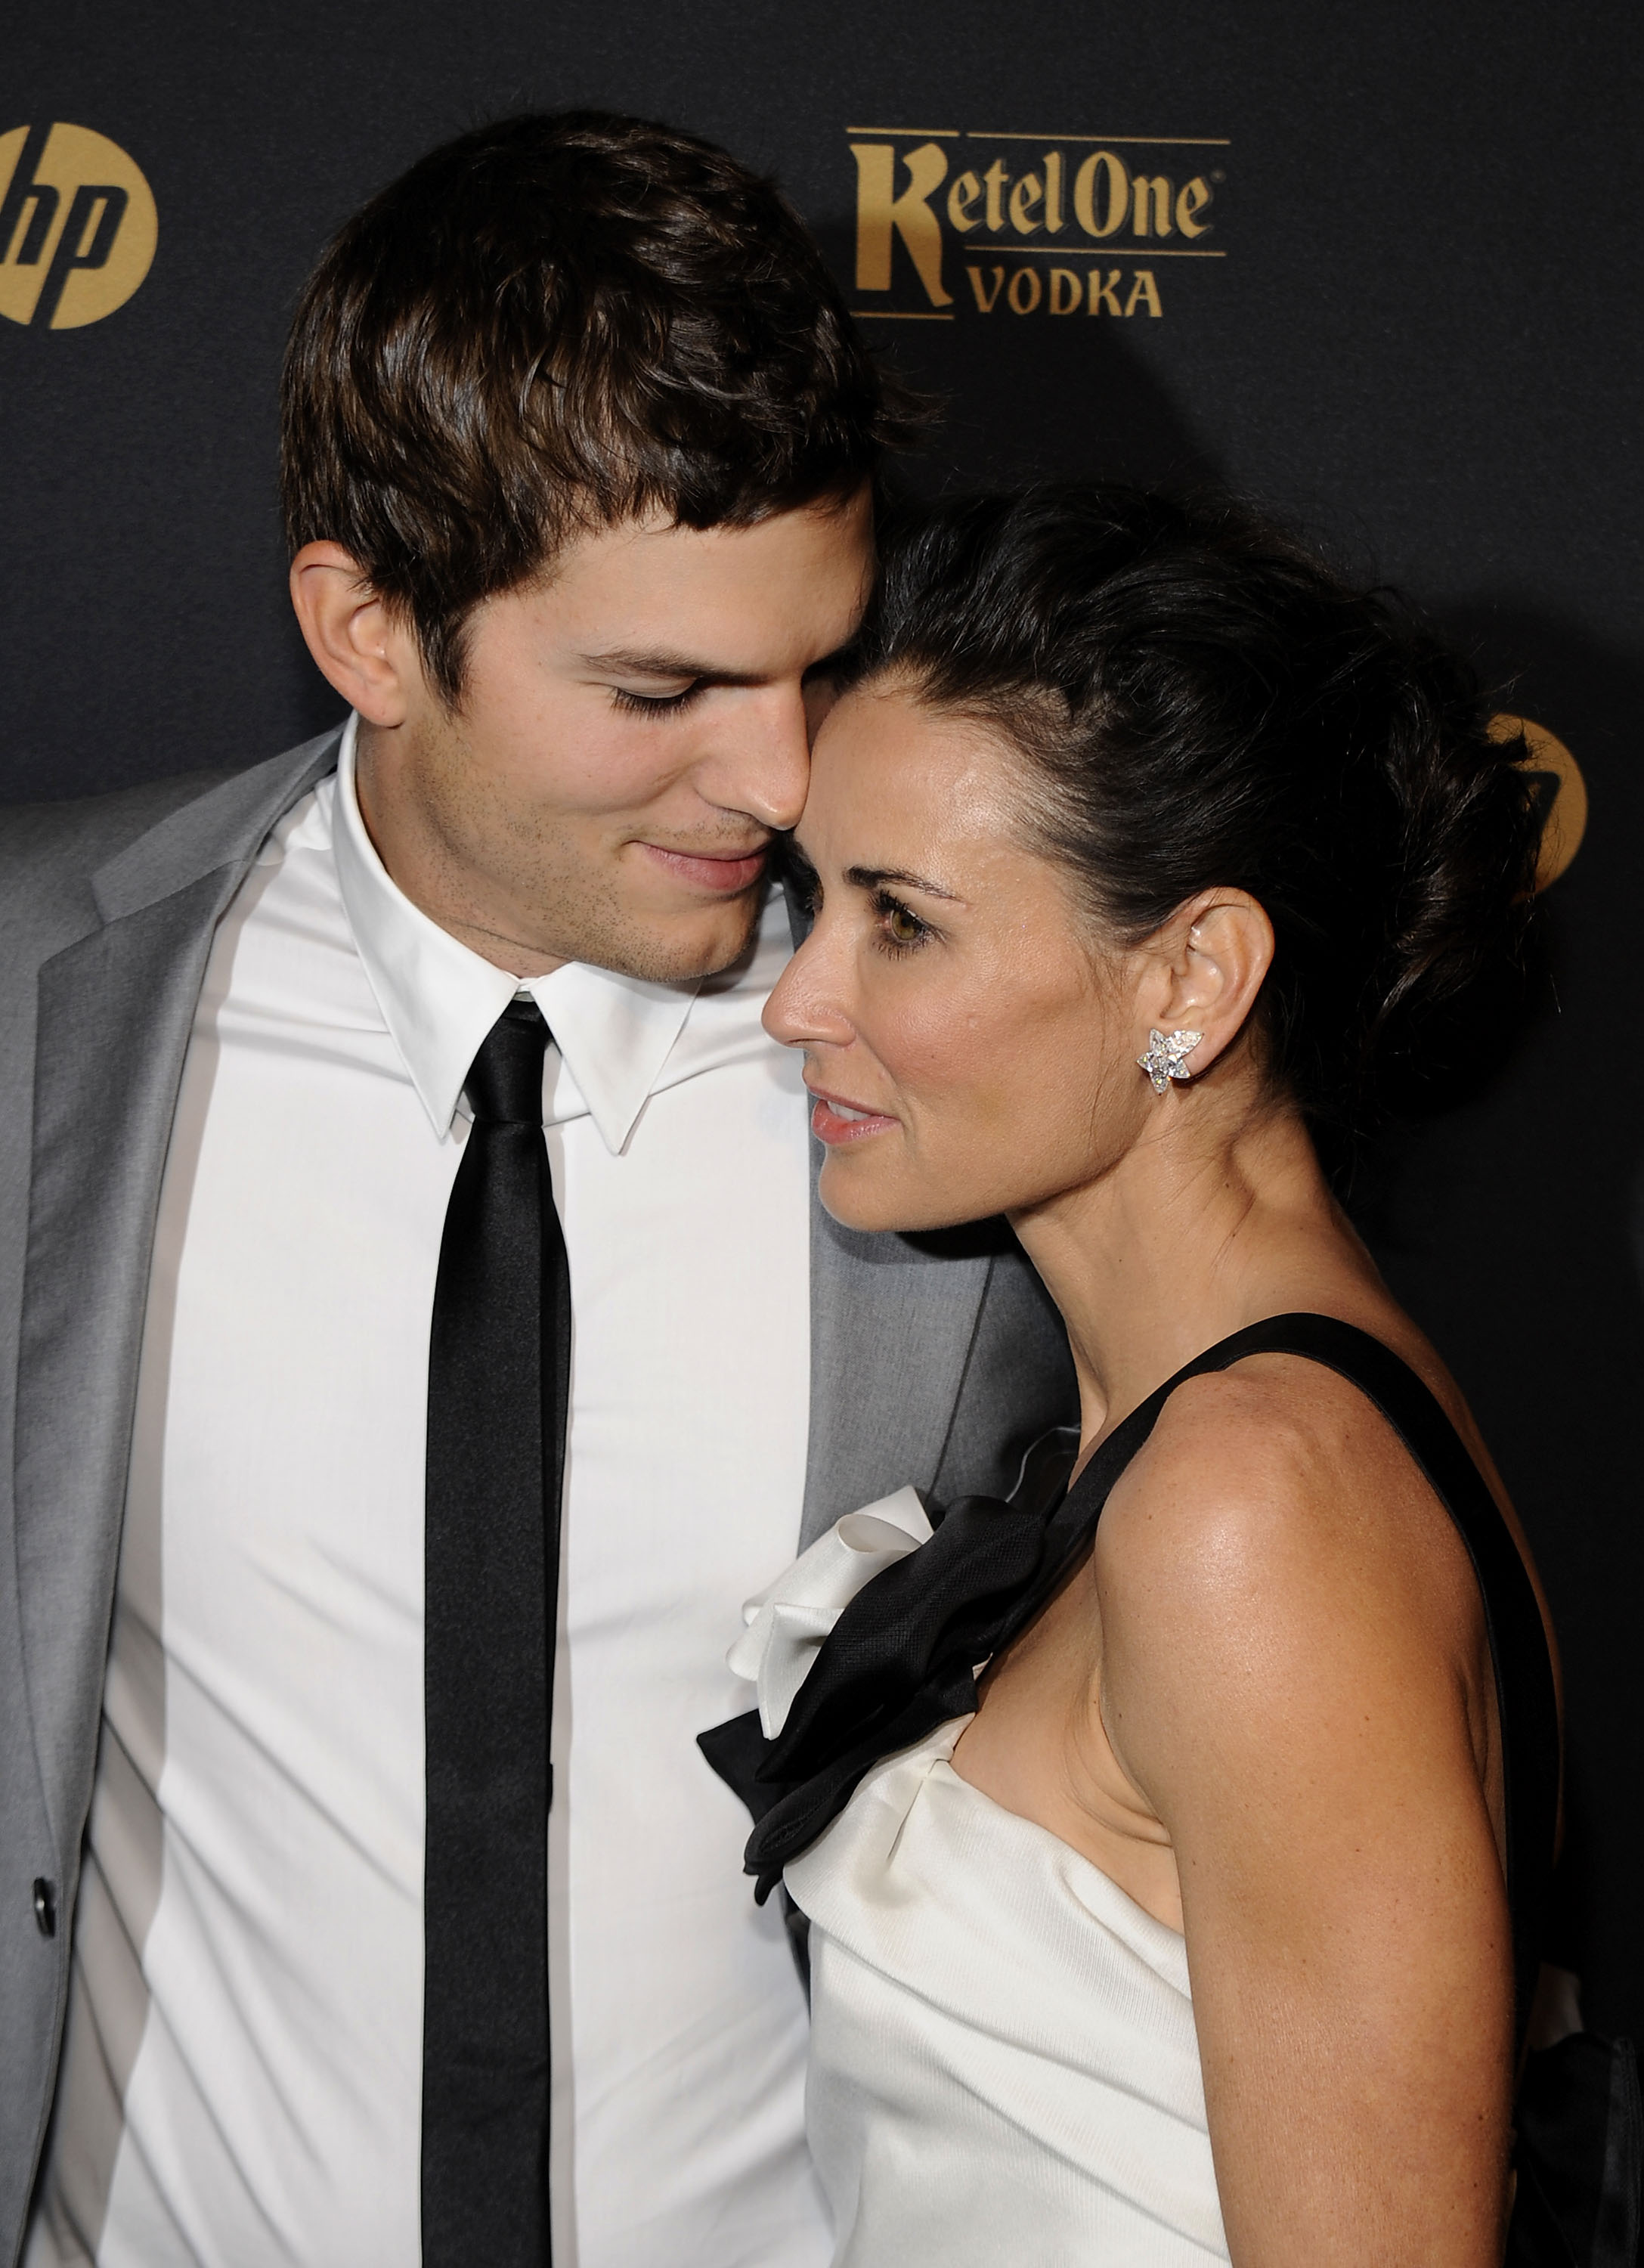 Image Credits: Getty Images / Larry Busacca | Ashton Kutcher and Demi Moore attend the GQ Gentlemen's Ball 2009 at The Edison Ballroom on October 28, 2009 in New York City.